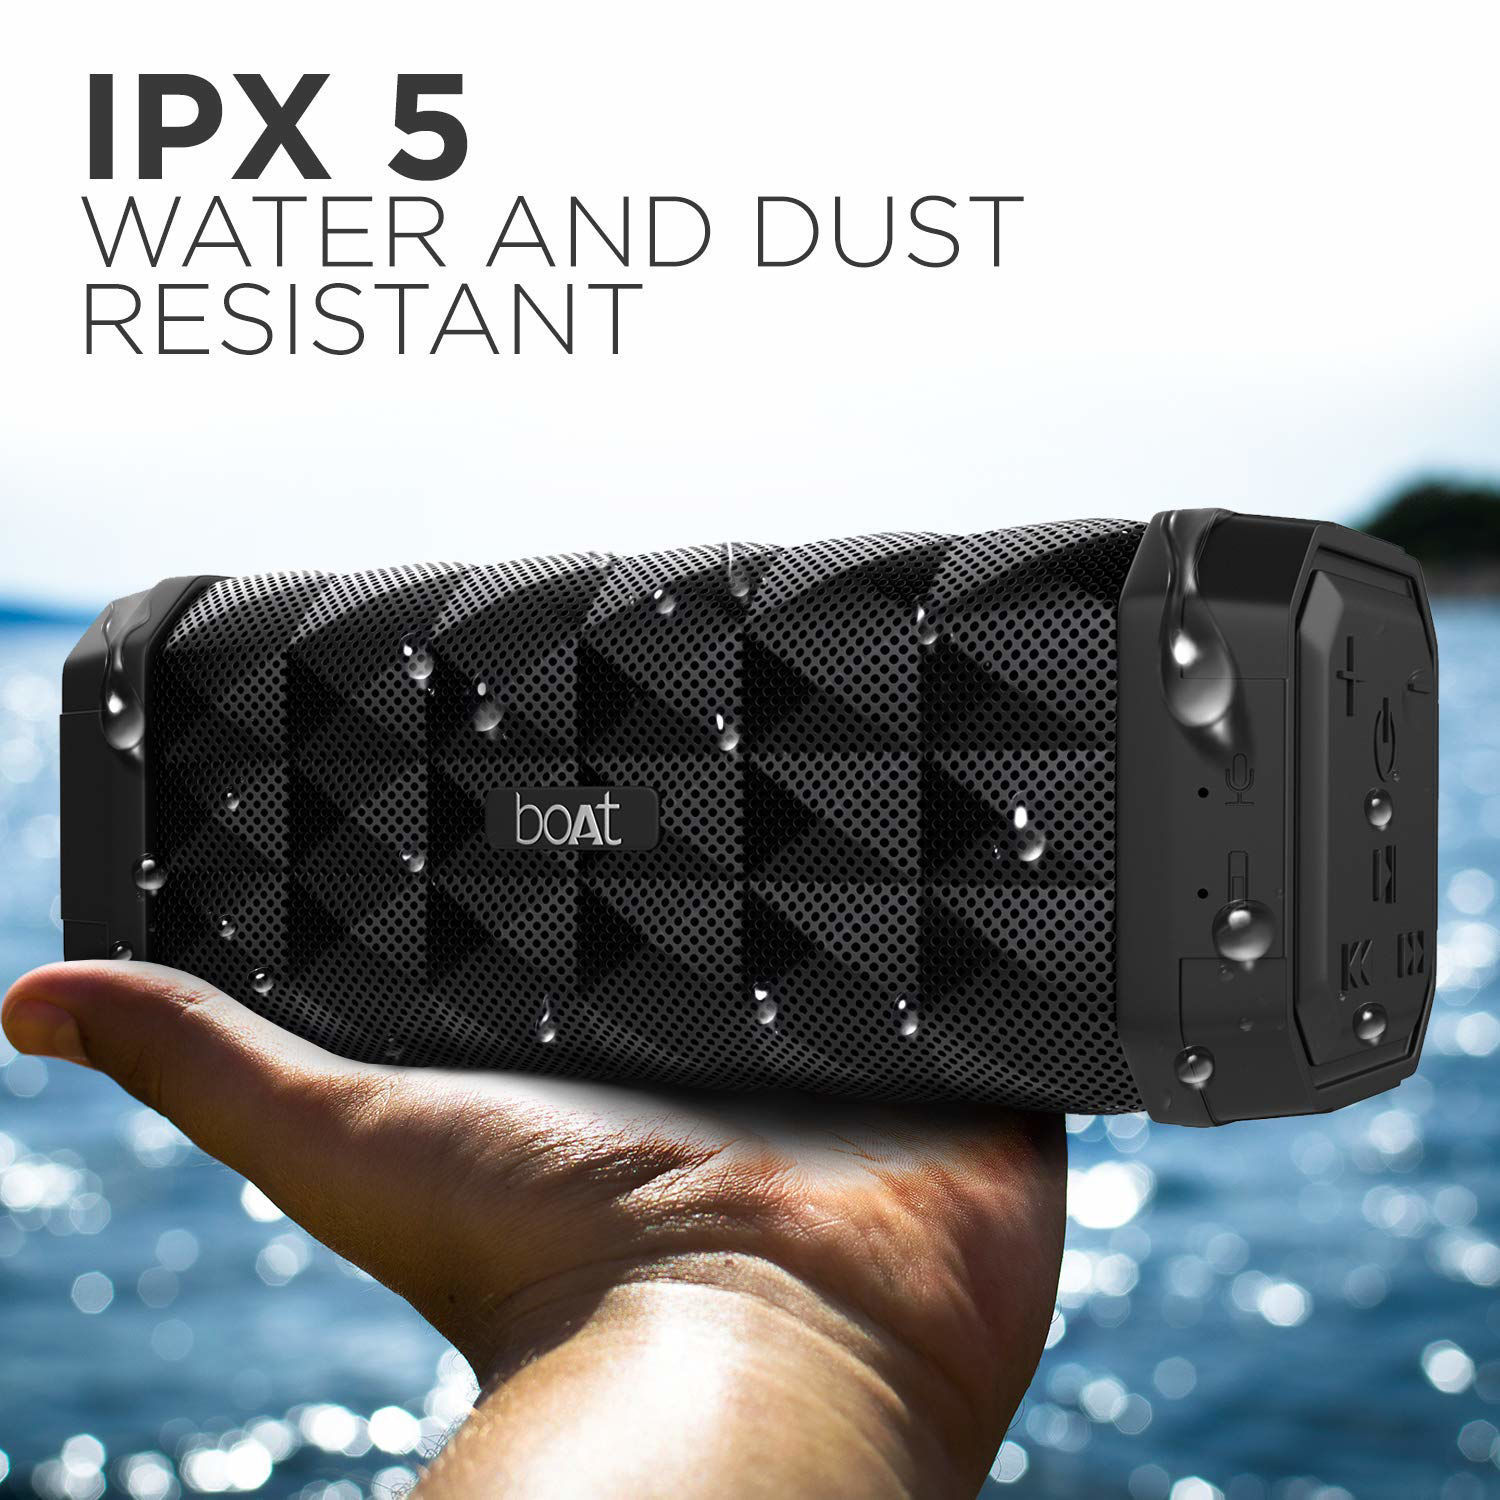 Picture of boAt Stone 650 Portable Wireless Speaker with 10W Stereo Sound, Powerful Bass, IPX5 Water & Splash Resistance, Multiple Connectivity Modes and Up to 7H Playback (Black)